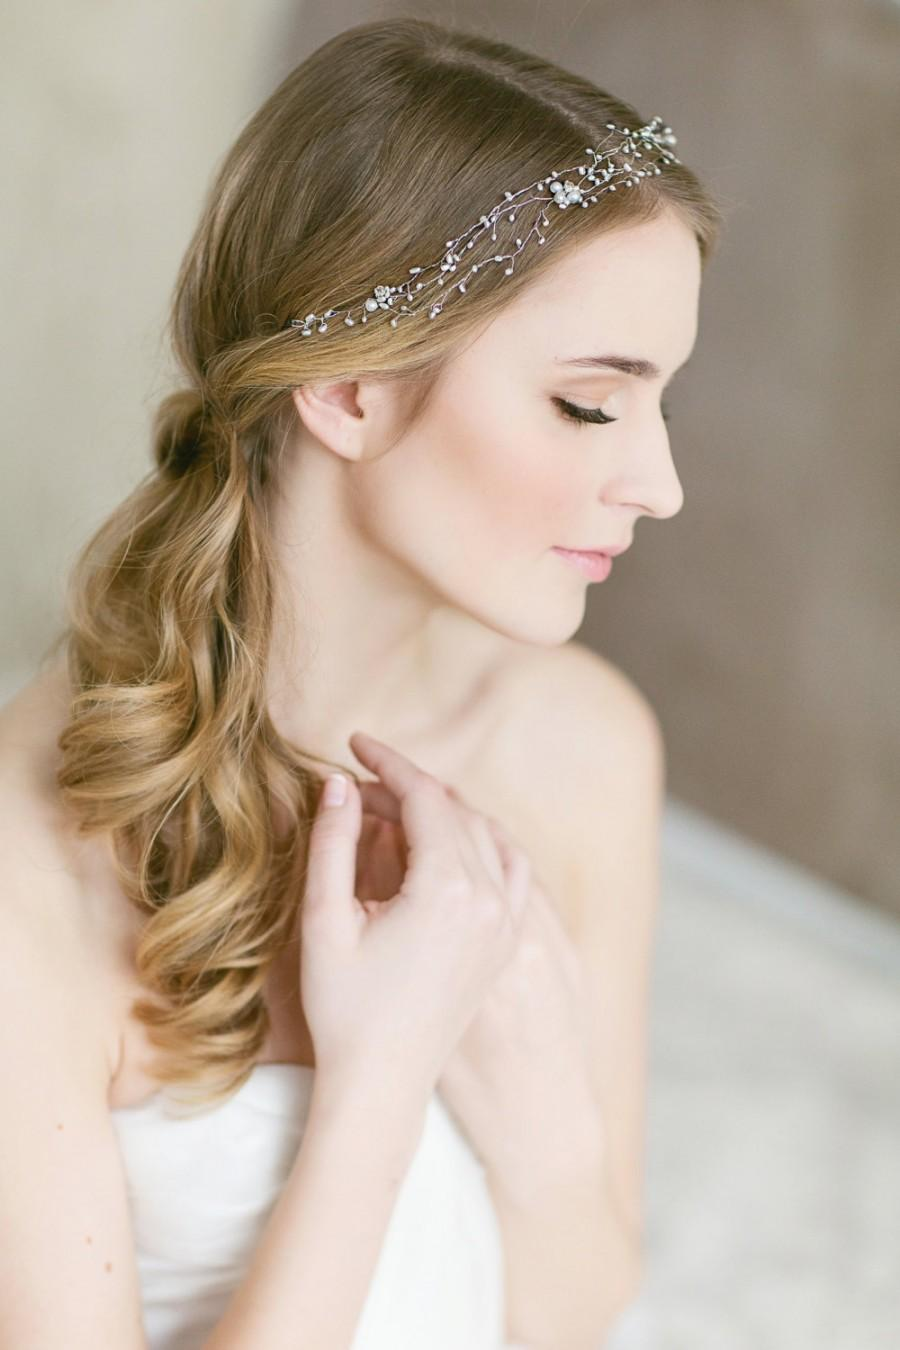 Mariage - Wedding Headband, Pearl Hair  Accessory for Bride, Delicate Ivory Pearl Hair Vine, Bridal Headpiece